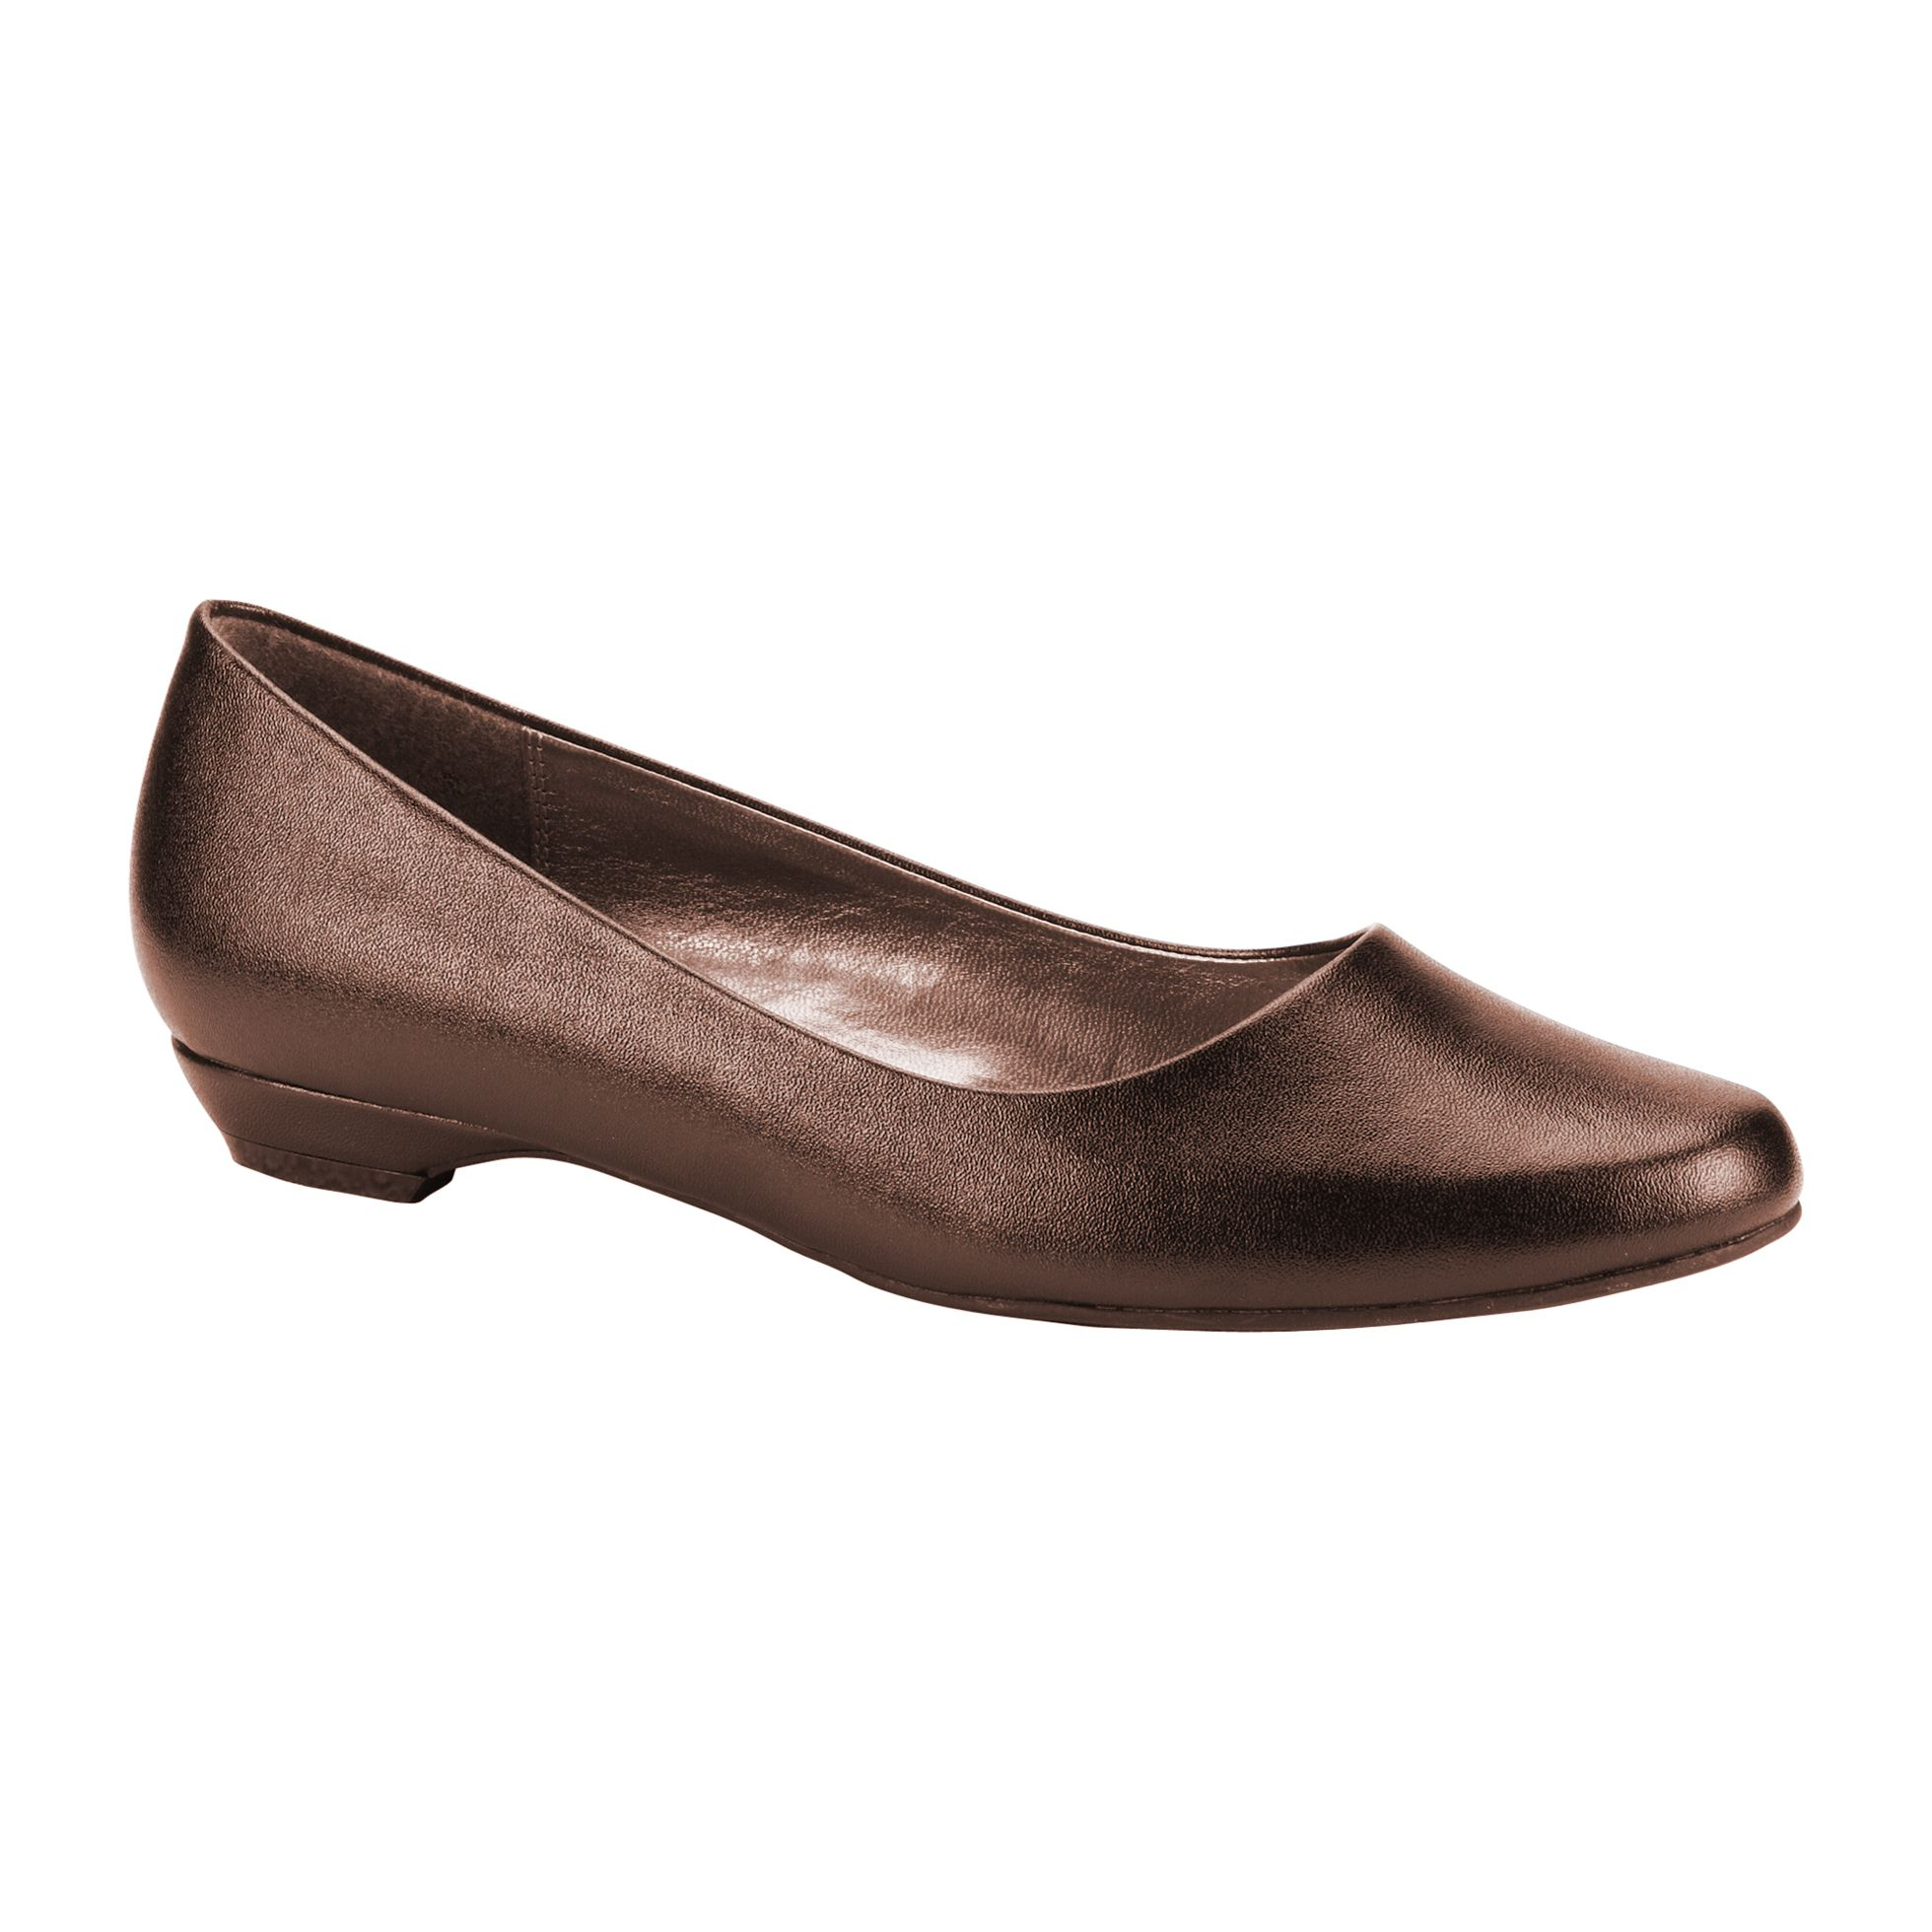 Basic Editions  Women's Irene Round Toe